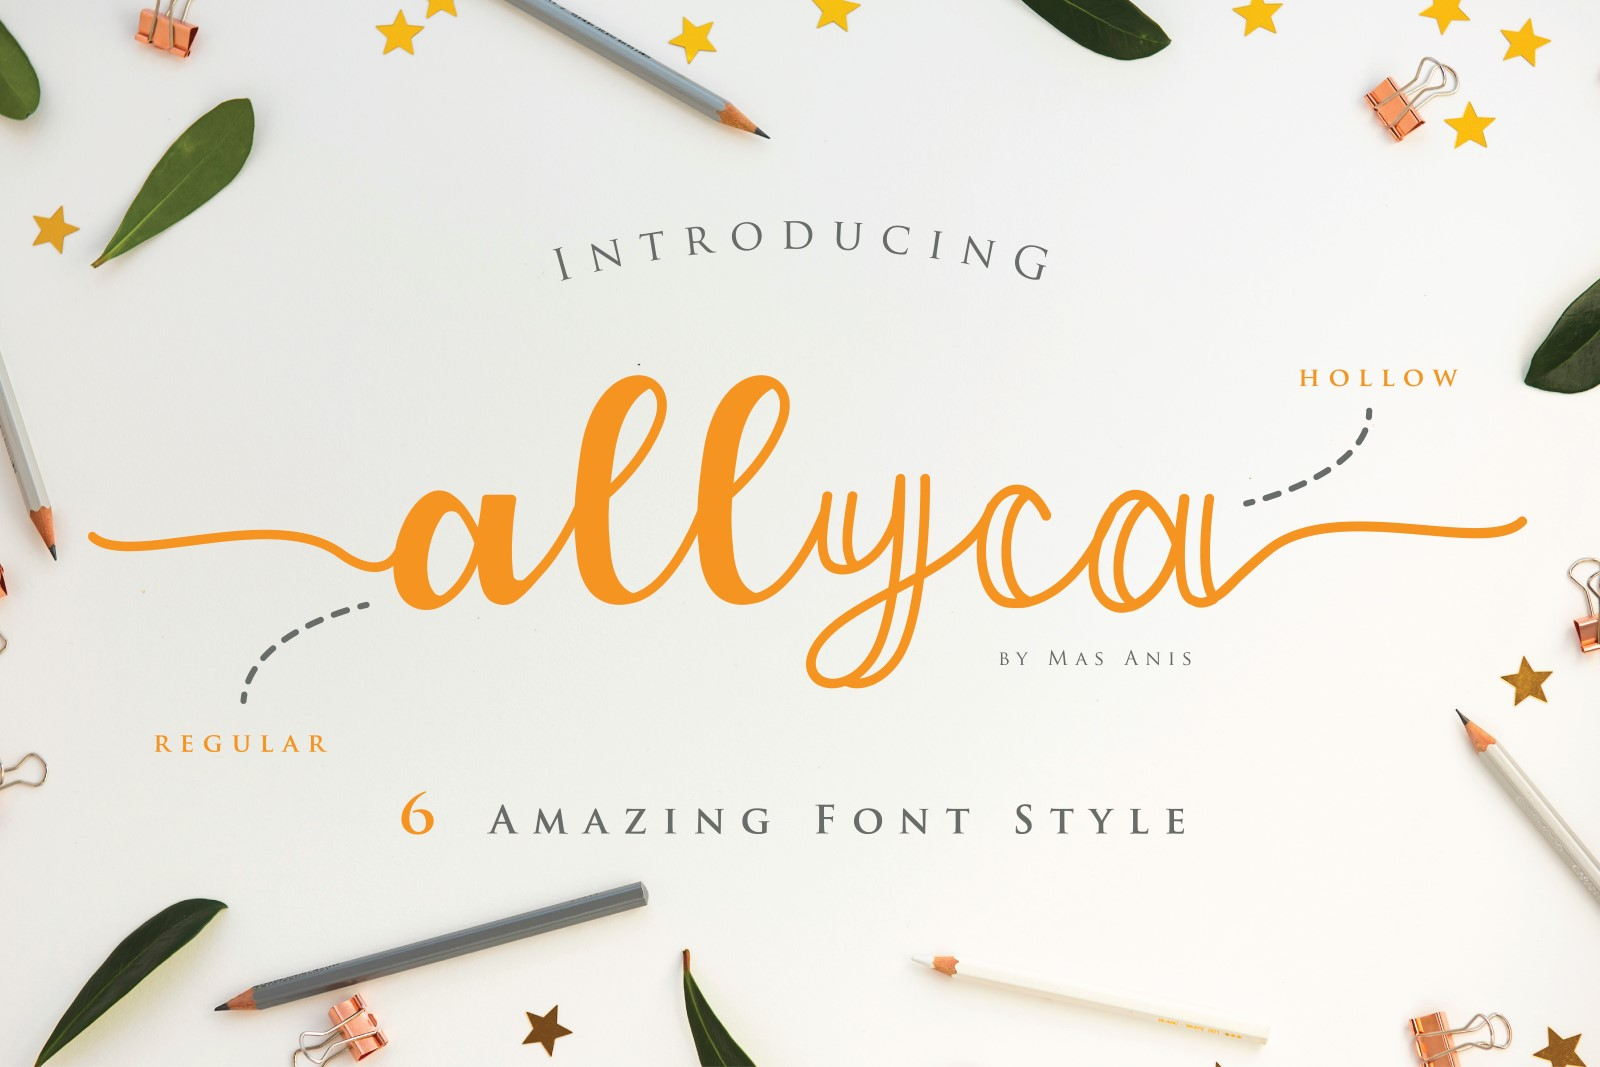 Allyca Font By Mas Anis